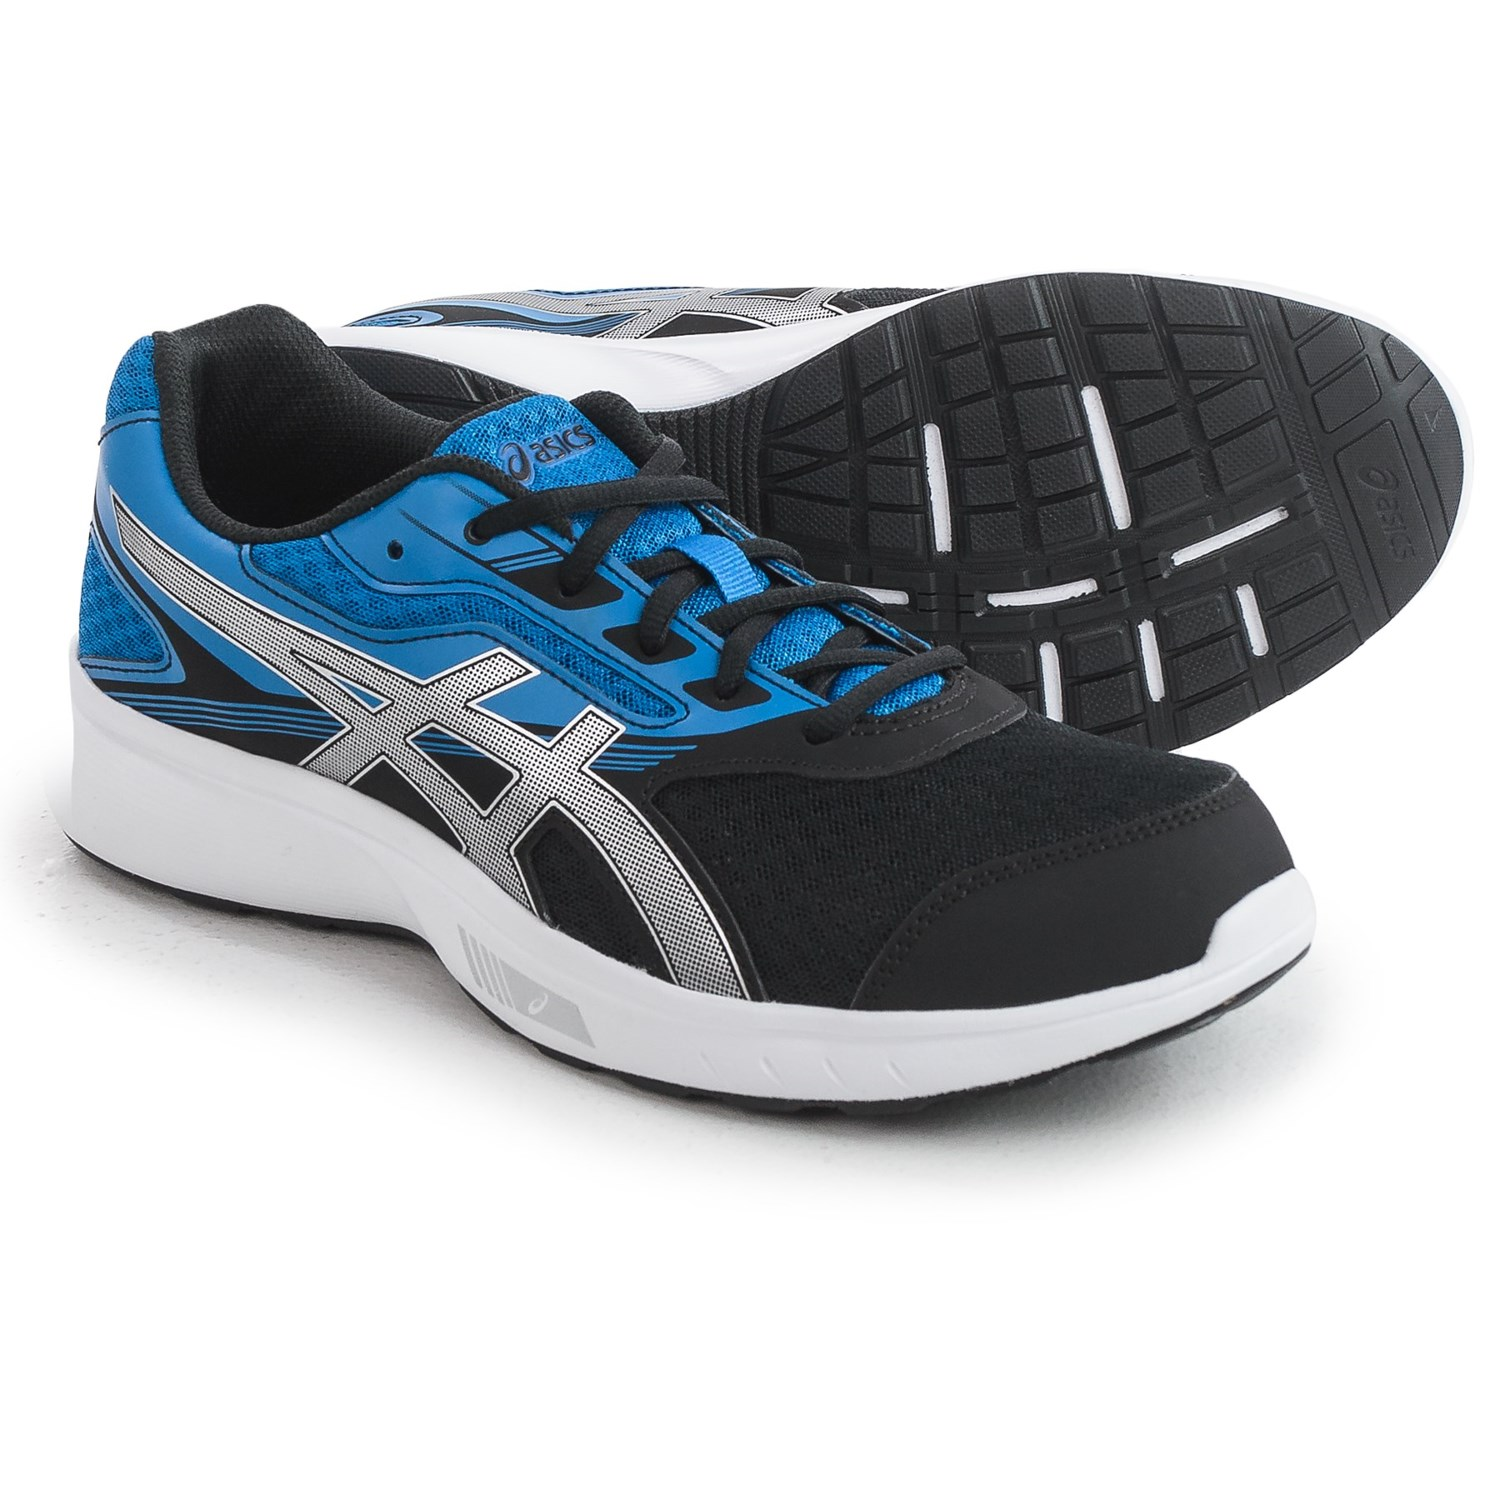 Asics Deals Running Shoes Buy Buy FcTKl1J